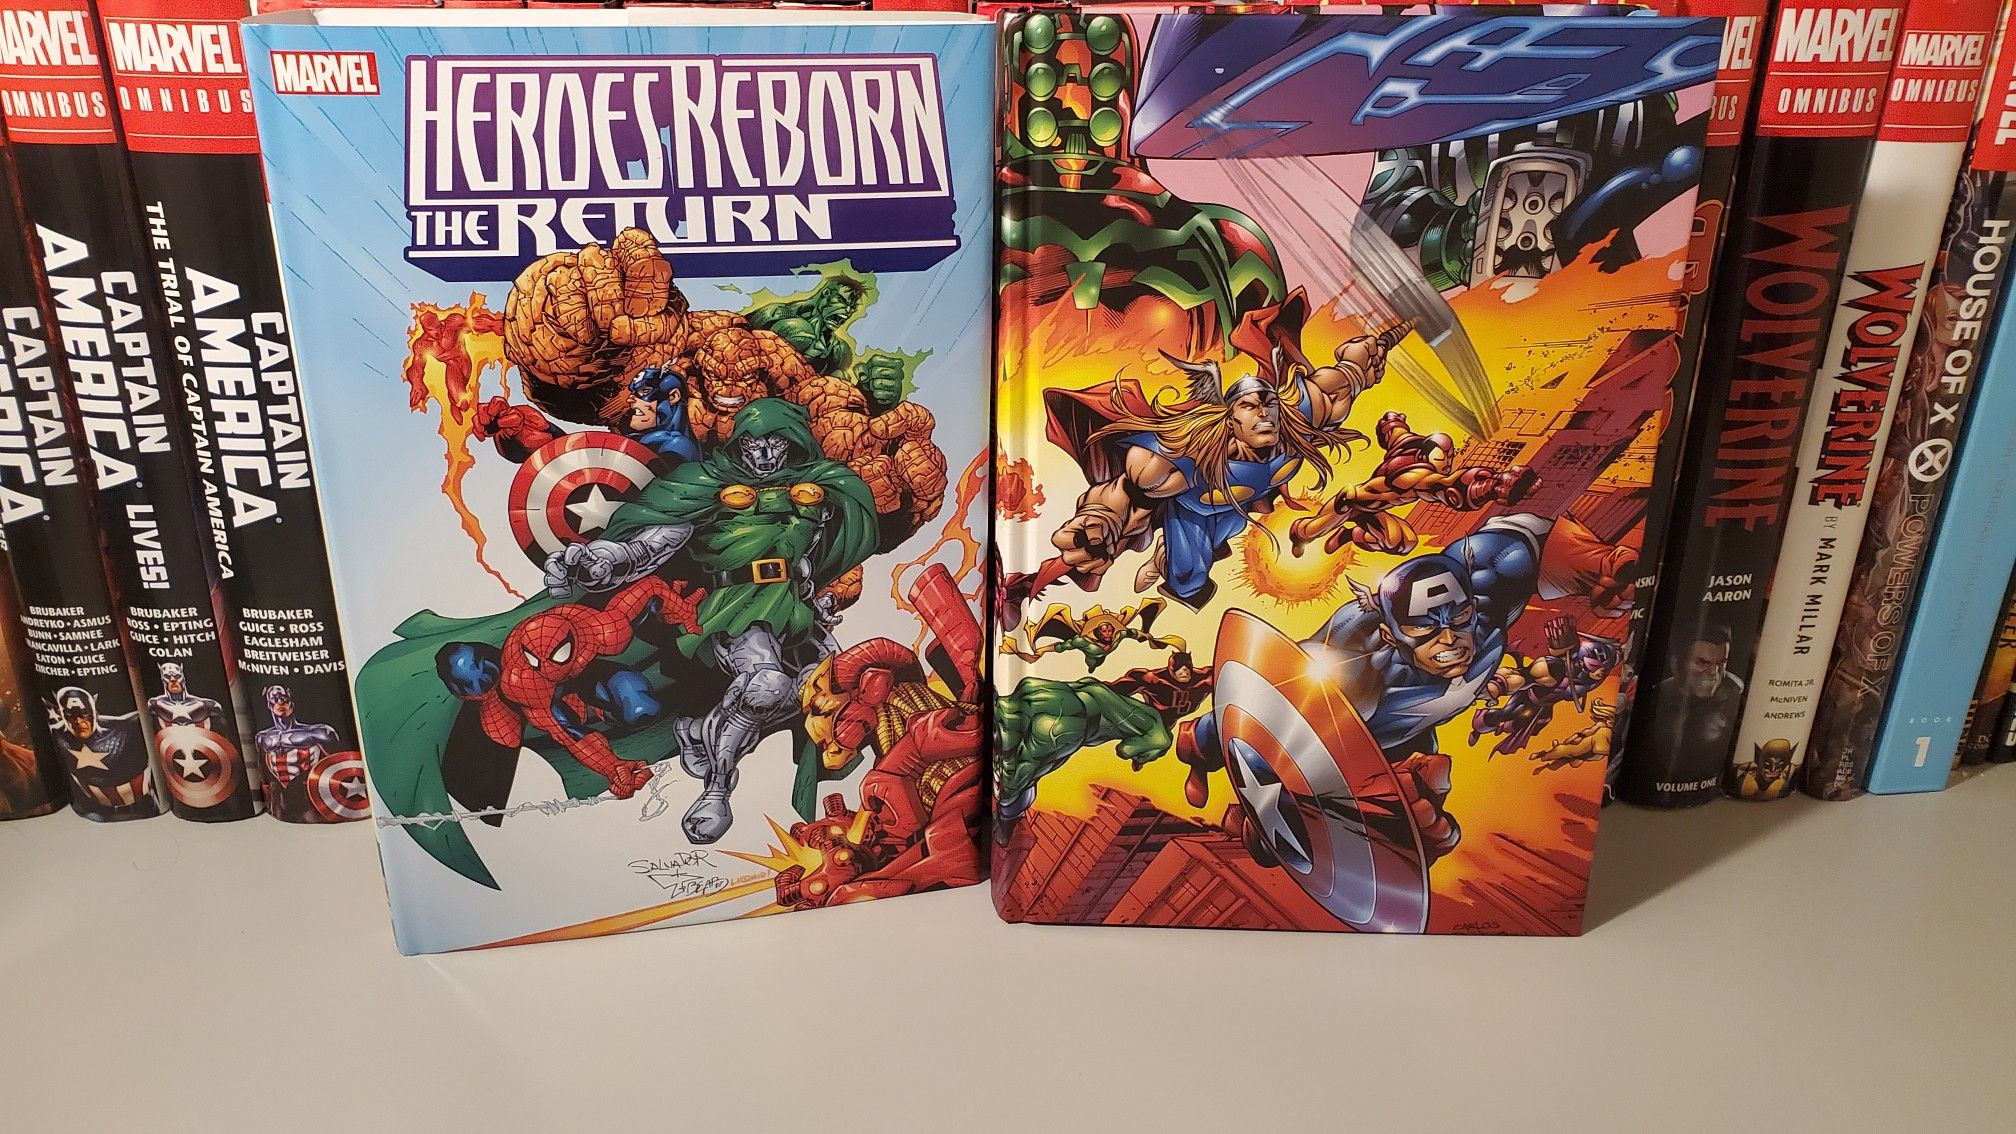 Heroes Reborn The Return Omnibus Overview Video Https M Youtube Com Watch V Tvbg2bzy3fs Marvelcomics Adi In 2020 Comic Book Collection Heroes Reborn Captain Marvel